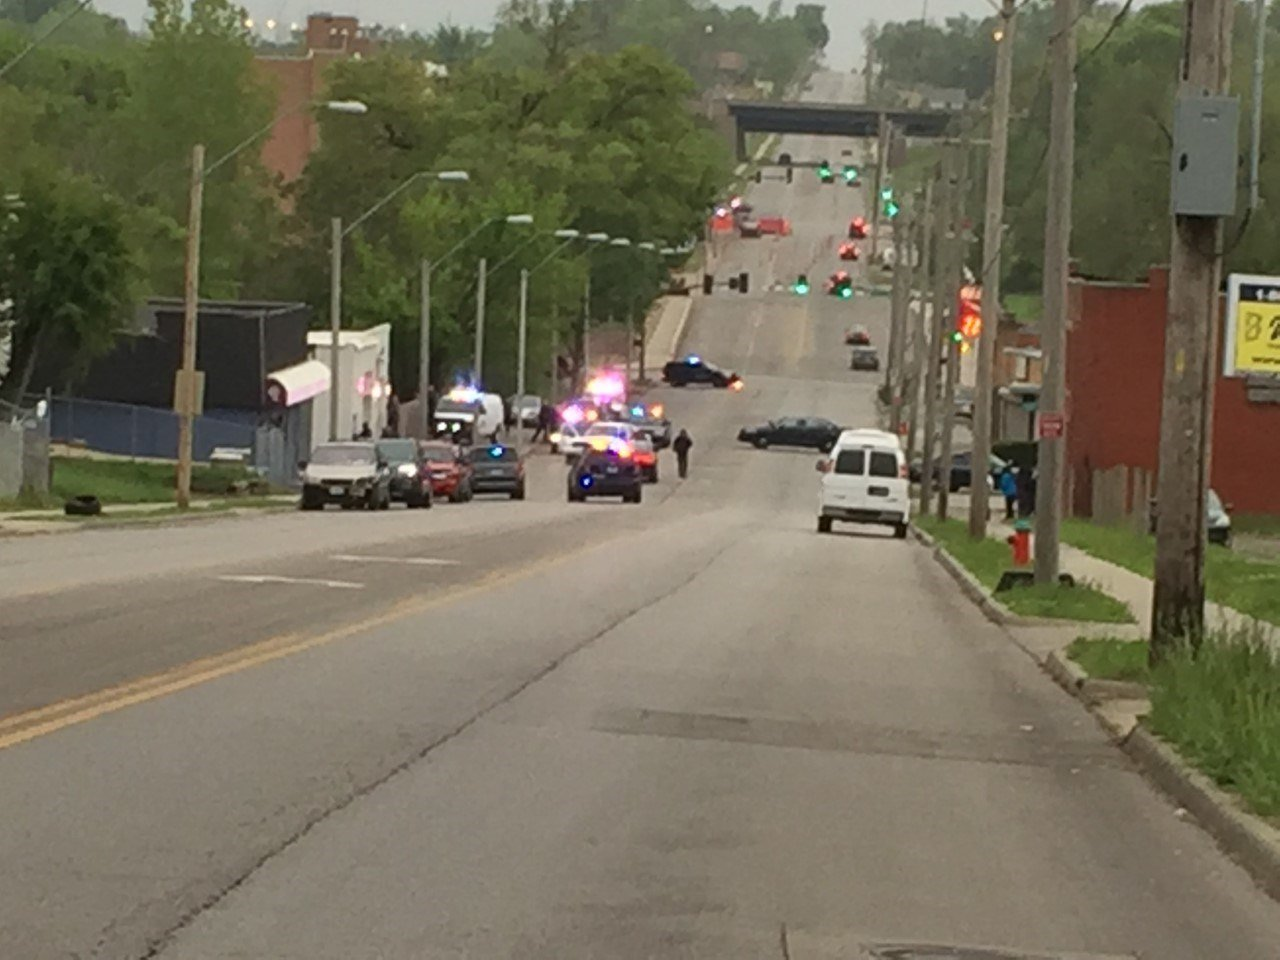 Kansas City police have one man in custody, but are looking for another, following a crash Wednesday evening. (KCTV5)